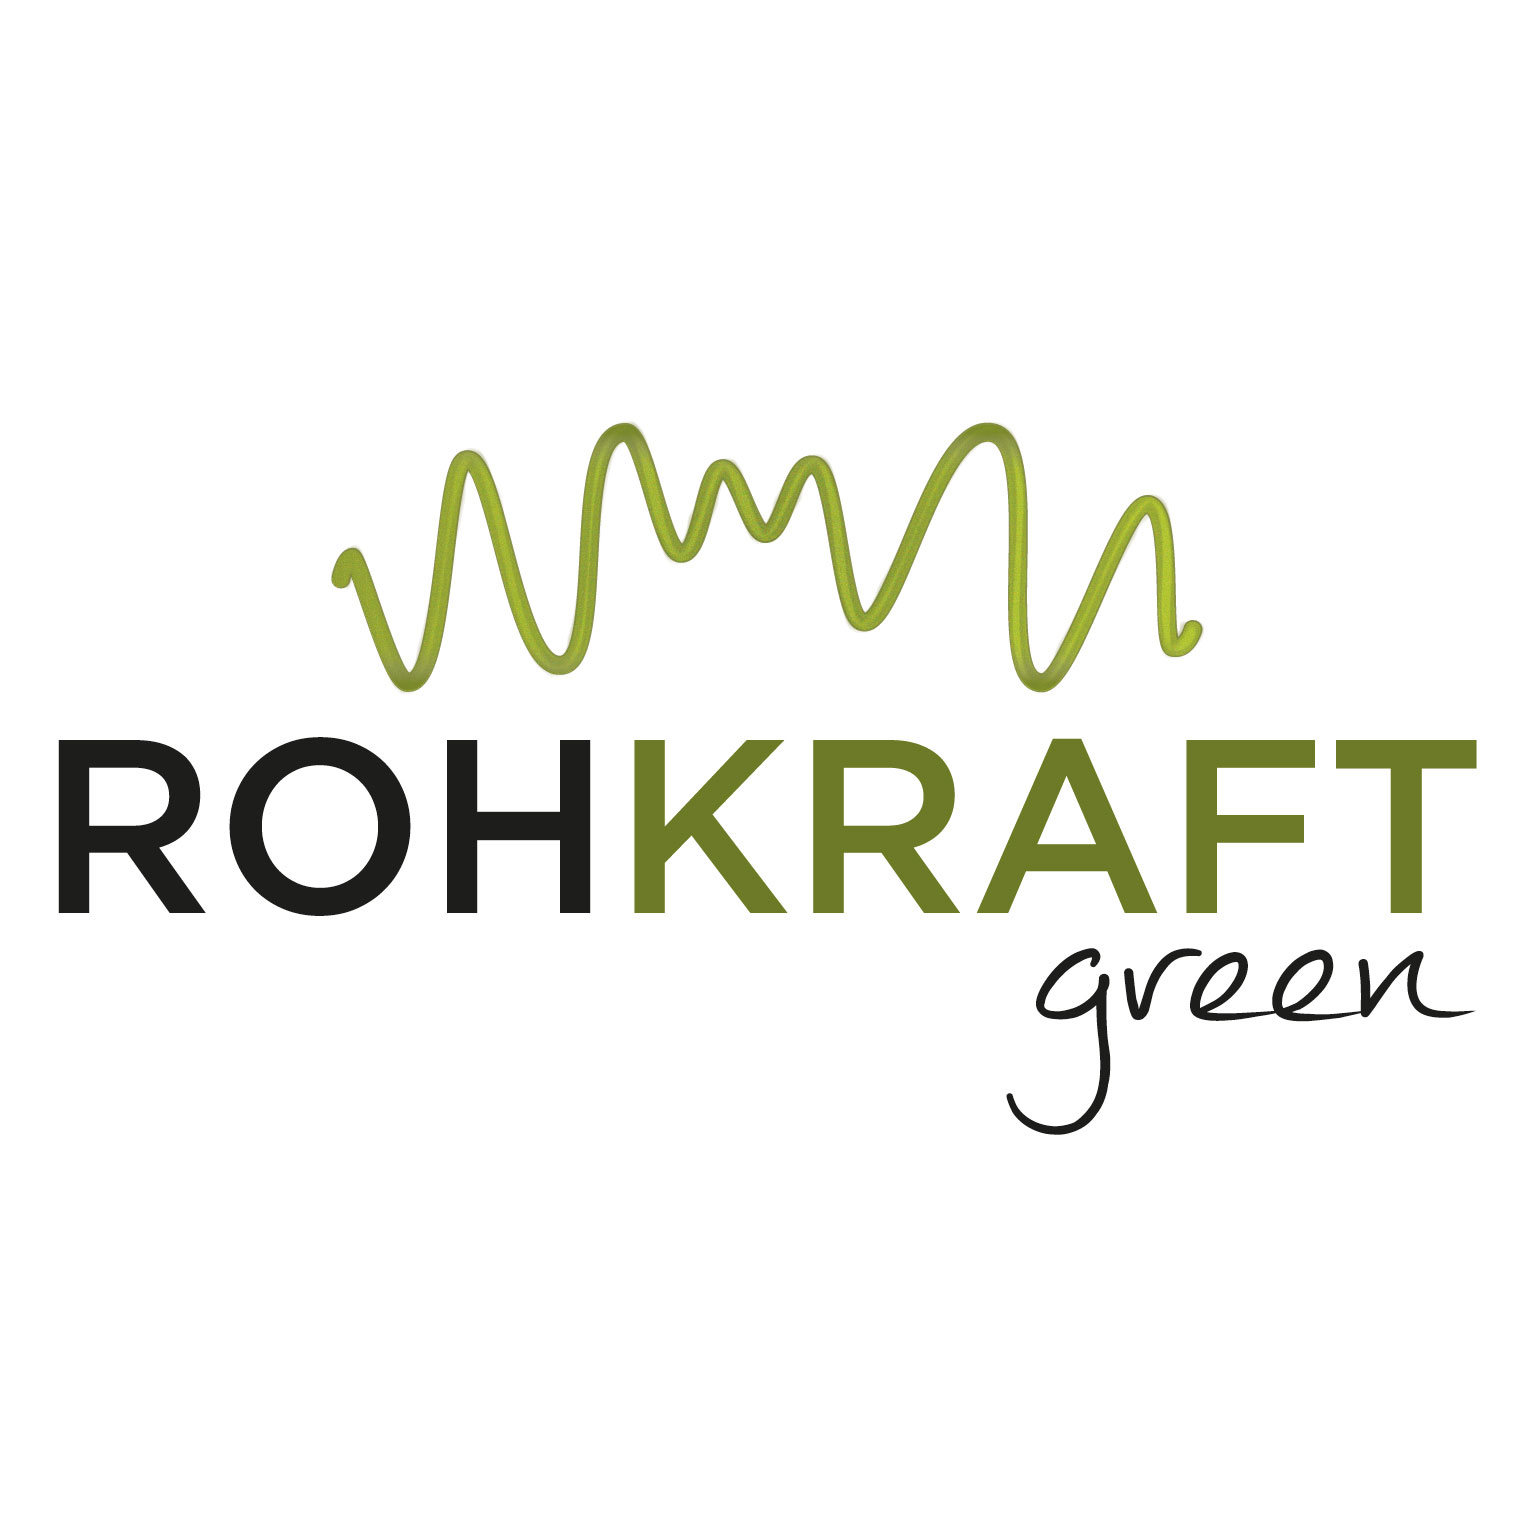 Rohkraft green – Corporate Design